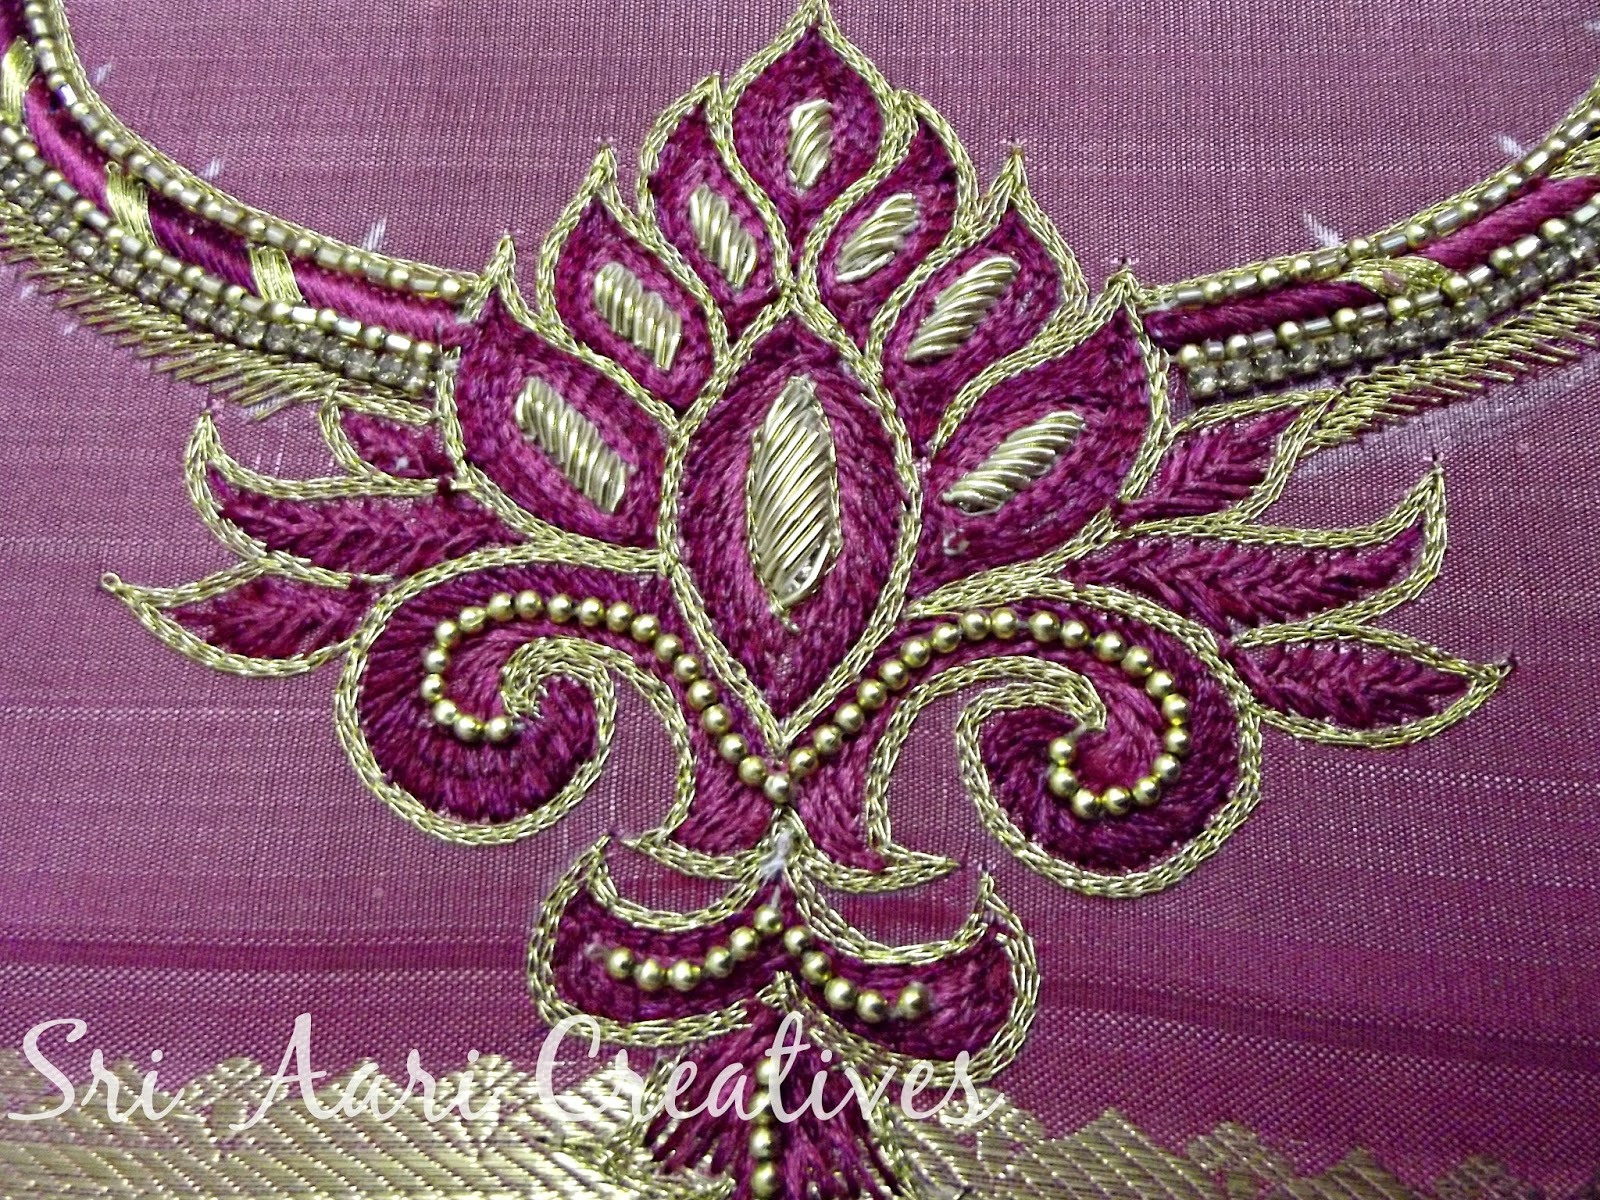 SRI AARI CREATIVES Aari Embroidery  Simple Designs